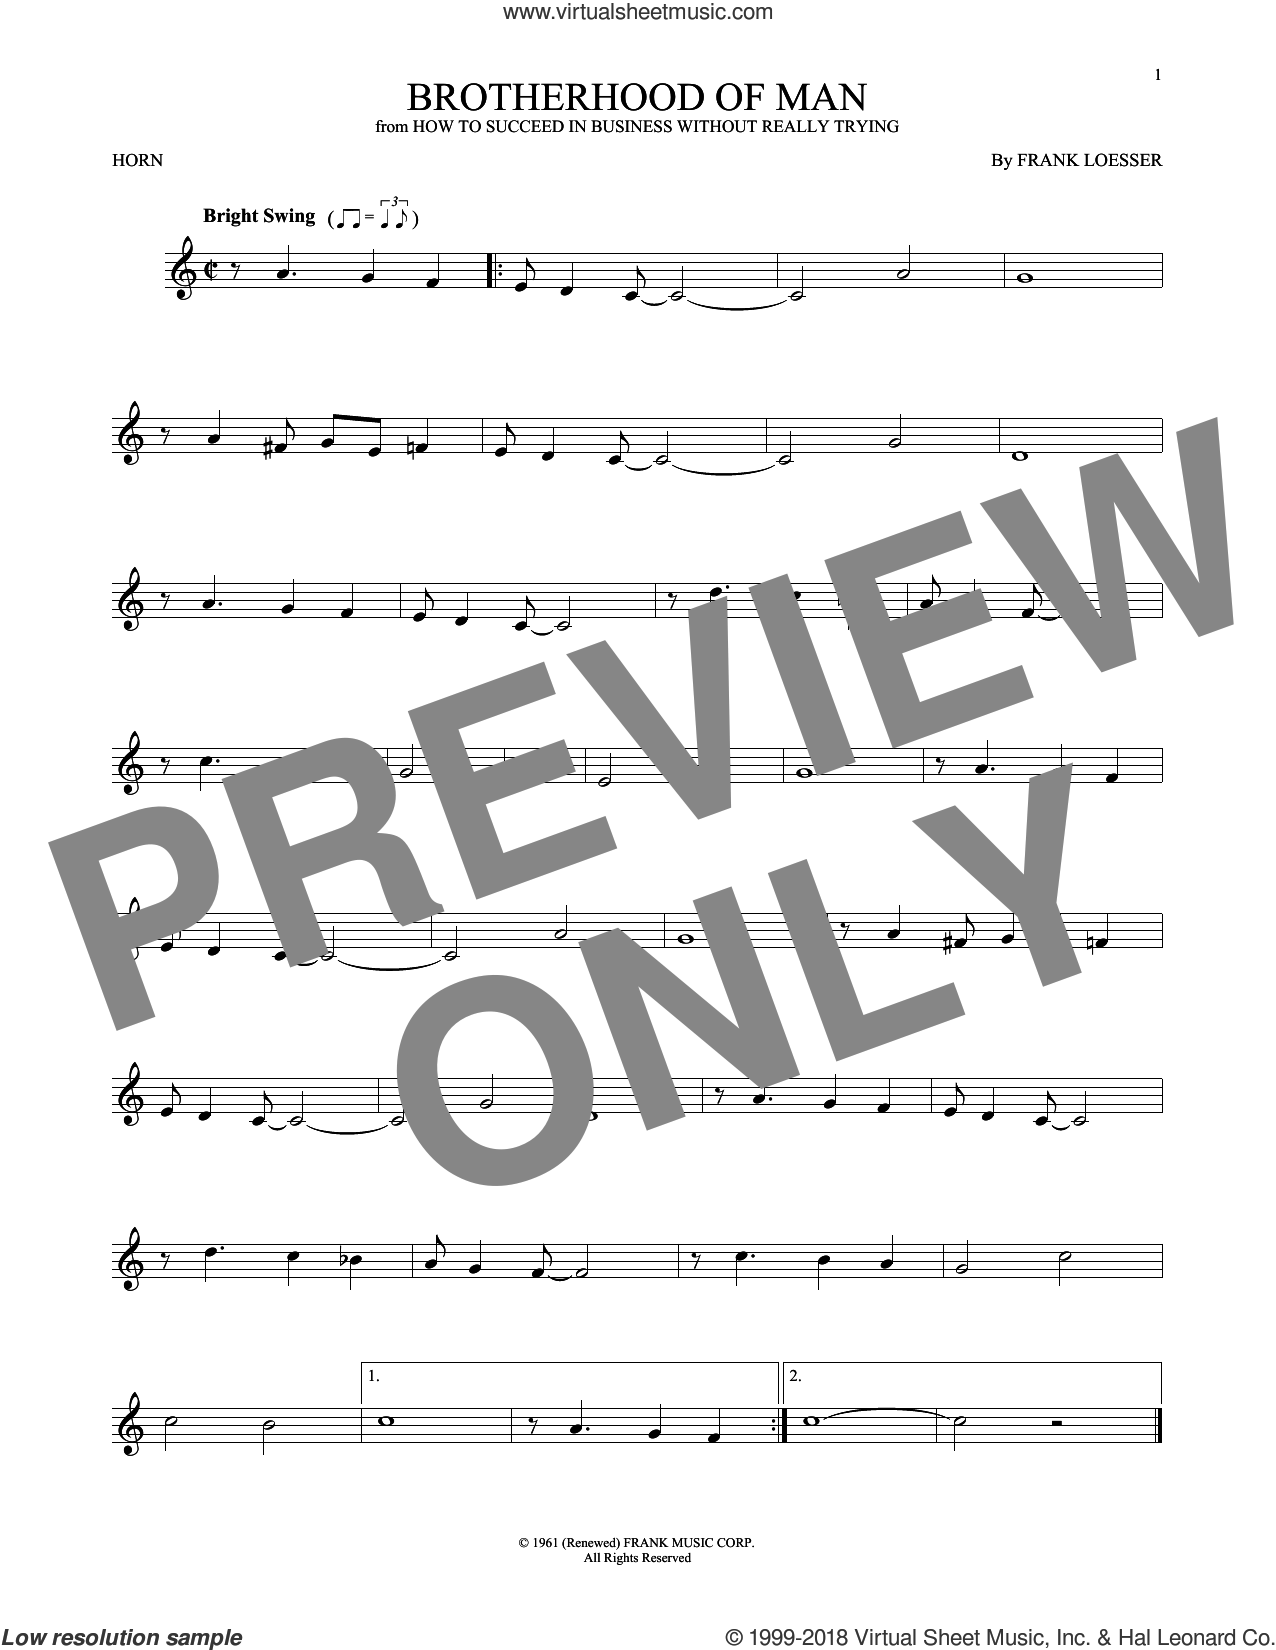 Brotherhood Of Man sheet music for horn solo by Frank Loesser, intermediate skill level